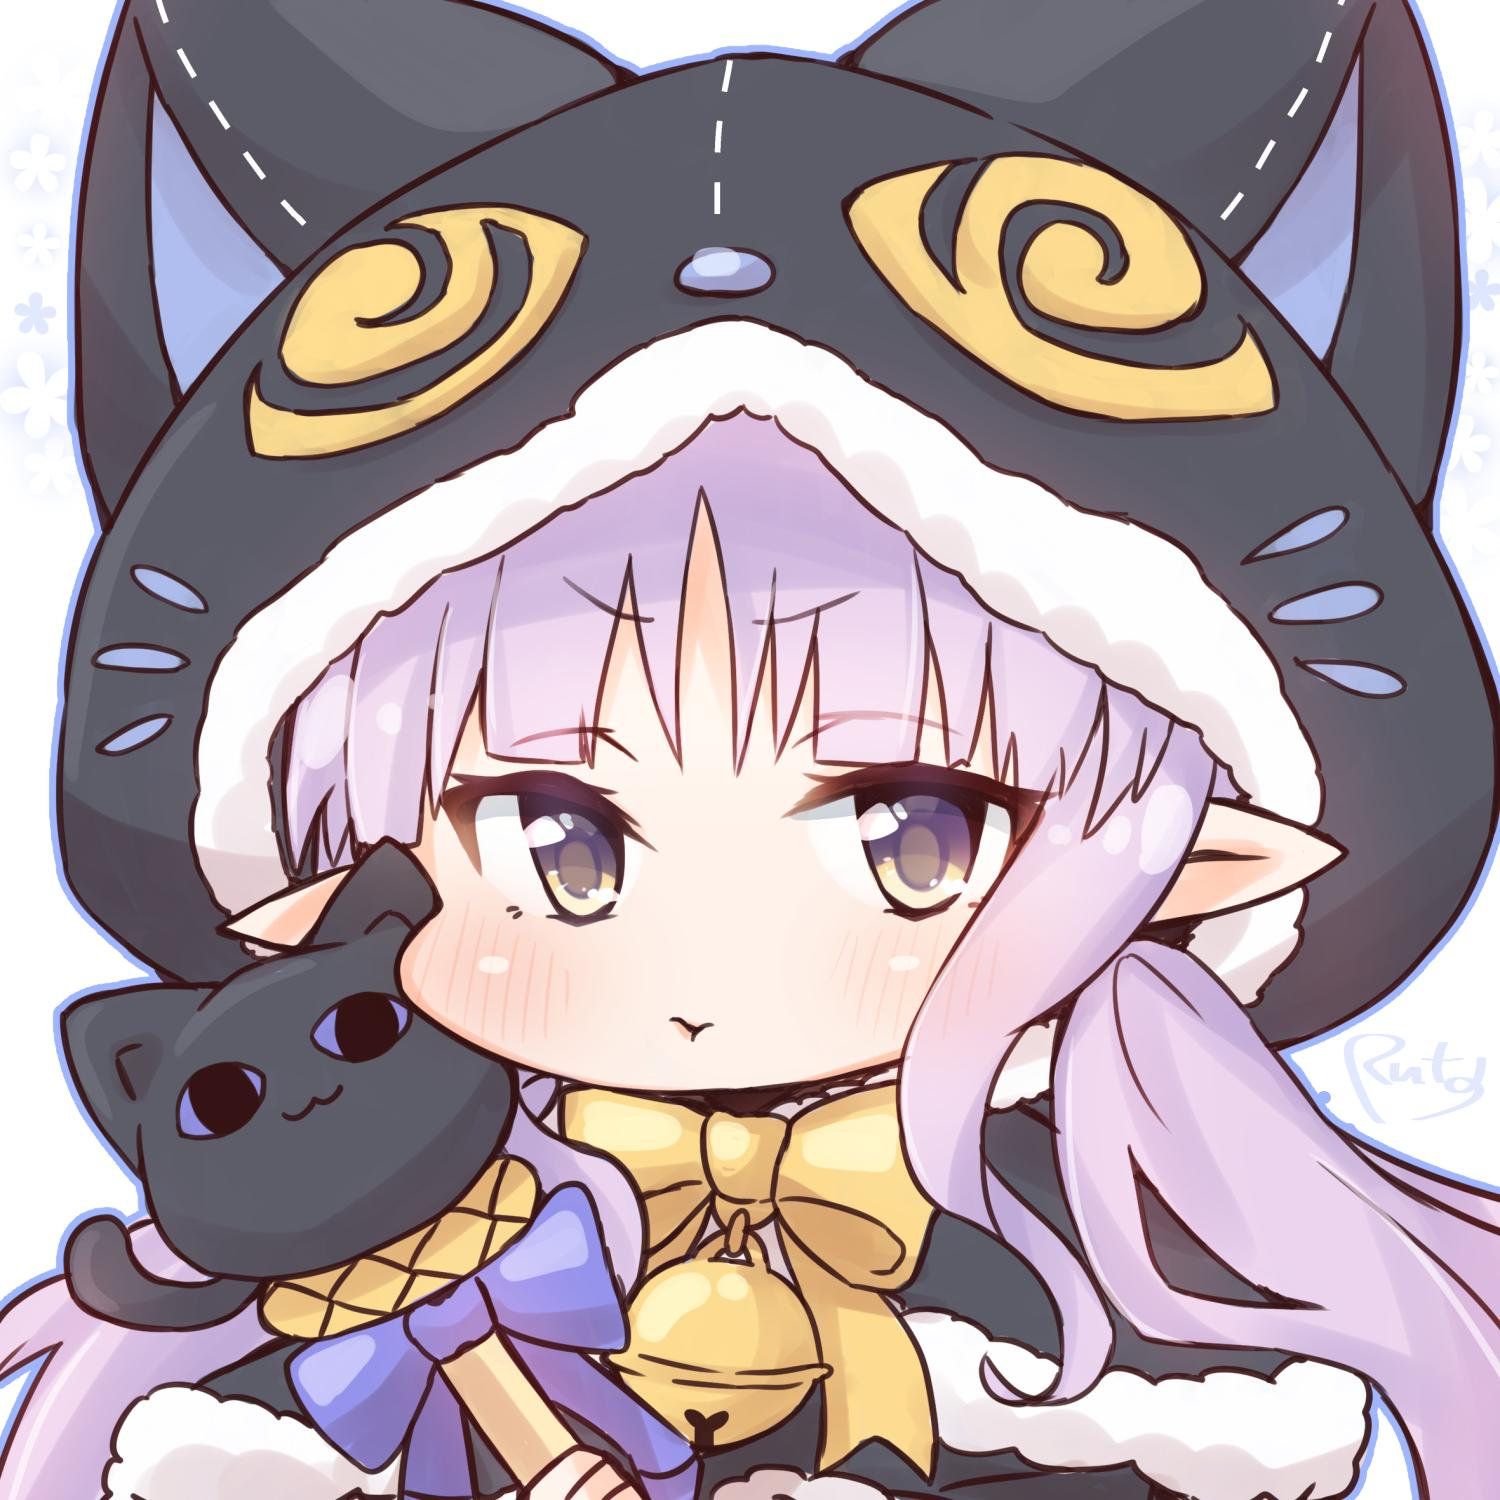 1girl :t animal_ears animal_hood bell black_capelet blush bow brown_eyes capelet cat_ears cat_hood closed_mouth commentary_request fake_animal_ears floral_background fur-trimmed_capelet fur-trimmed_hood fur_trim highres hikawa_kyoka hood hood_up hooded_capelet jingle_bell long_hair looking_at_viewer pointy_ears pout princess_connect! princess_connect!_re:dive purple_bow purple_hair ruta_(rt_aitrt) signature simple_background solo twintails upper_body v-shaped_eyebrows white_background yellow_bow